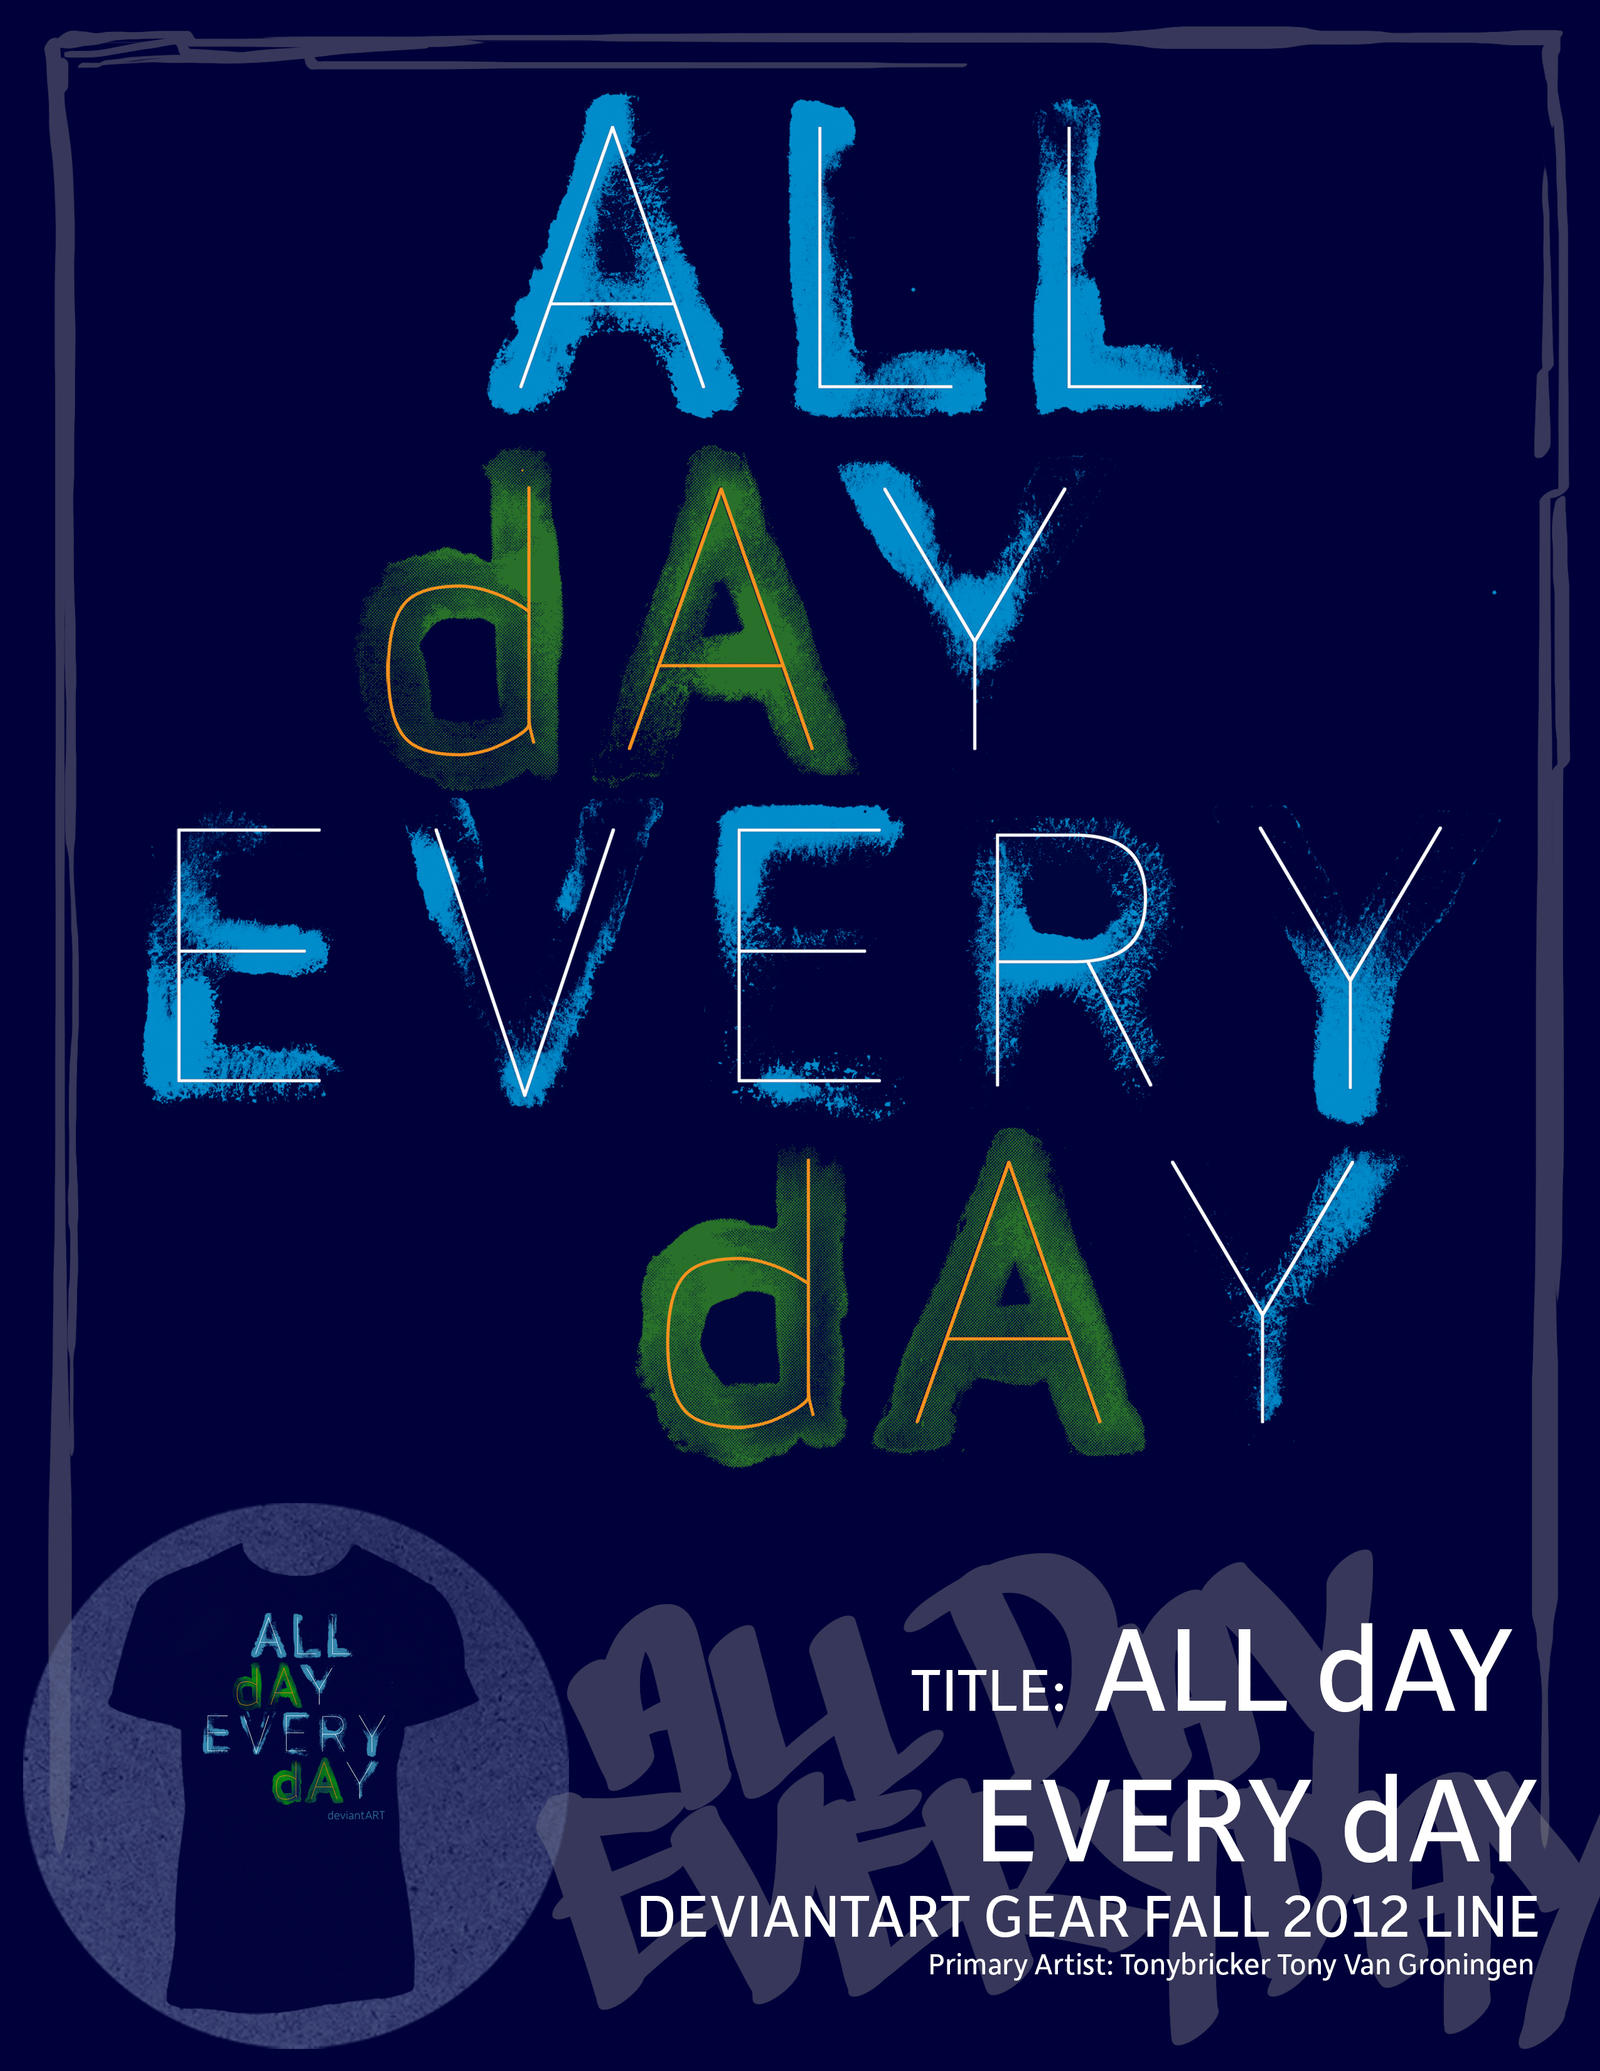 All dAY by draweverywhere